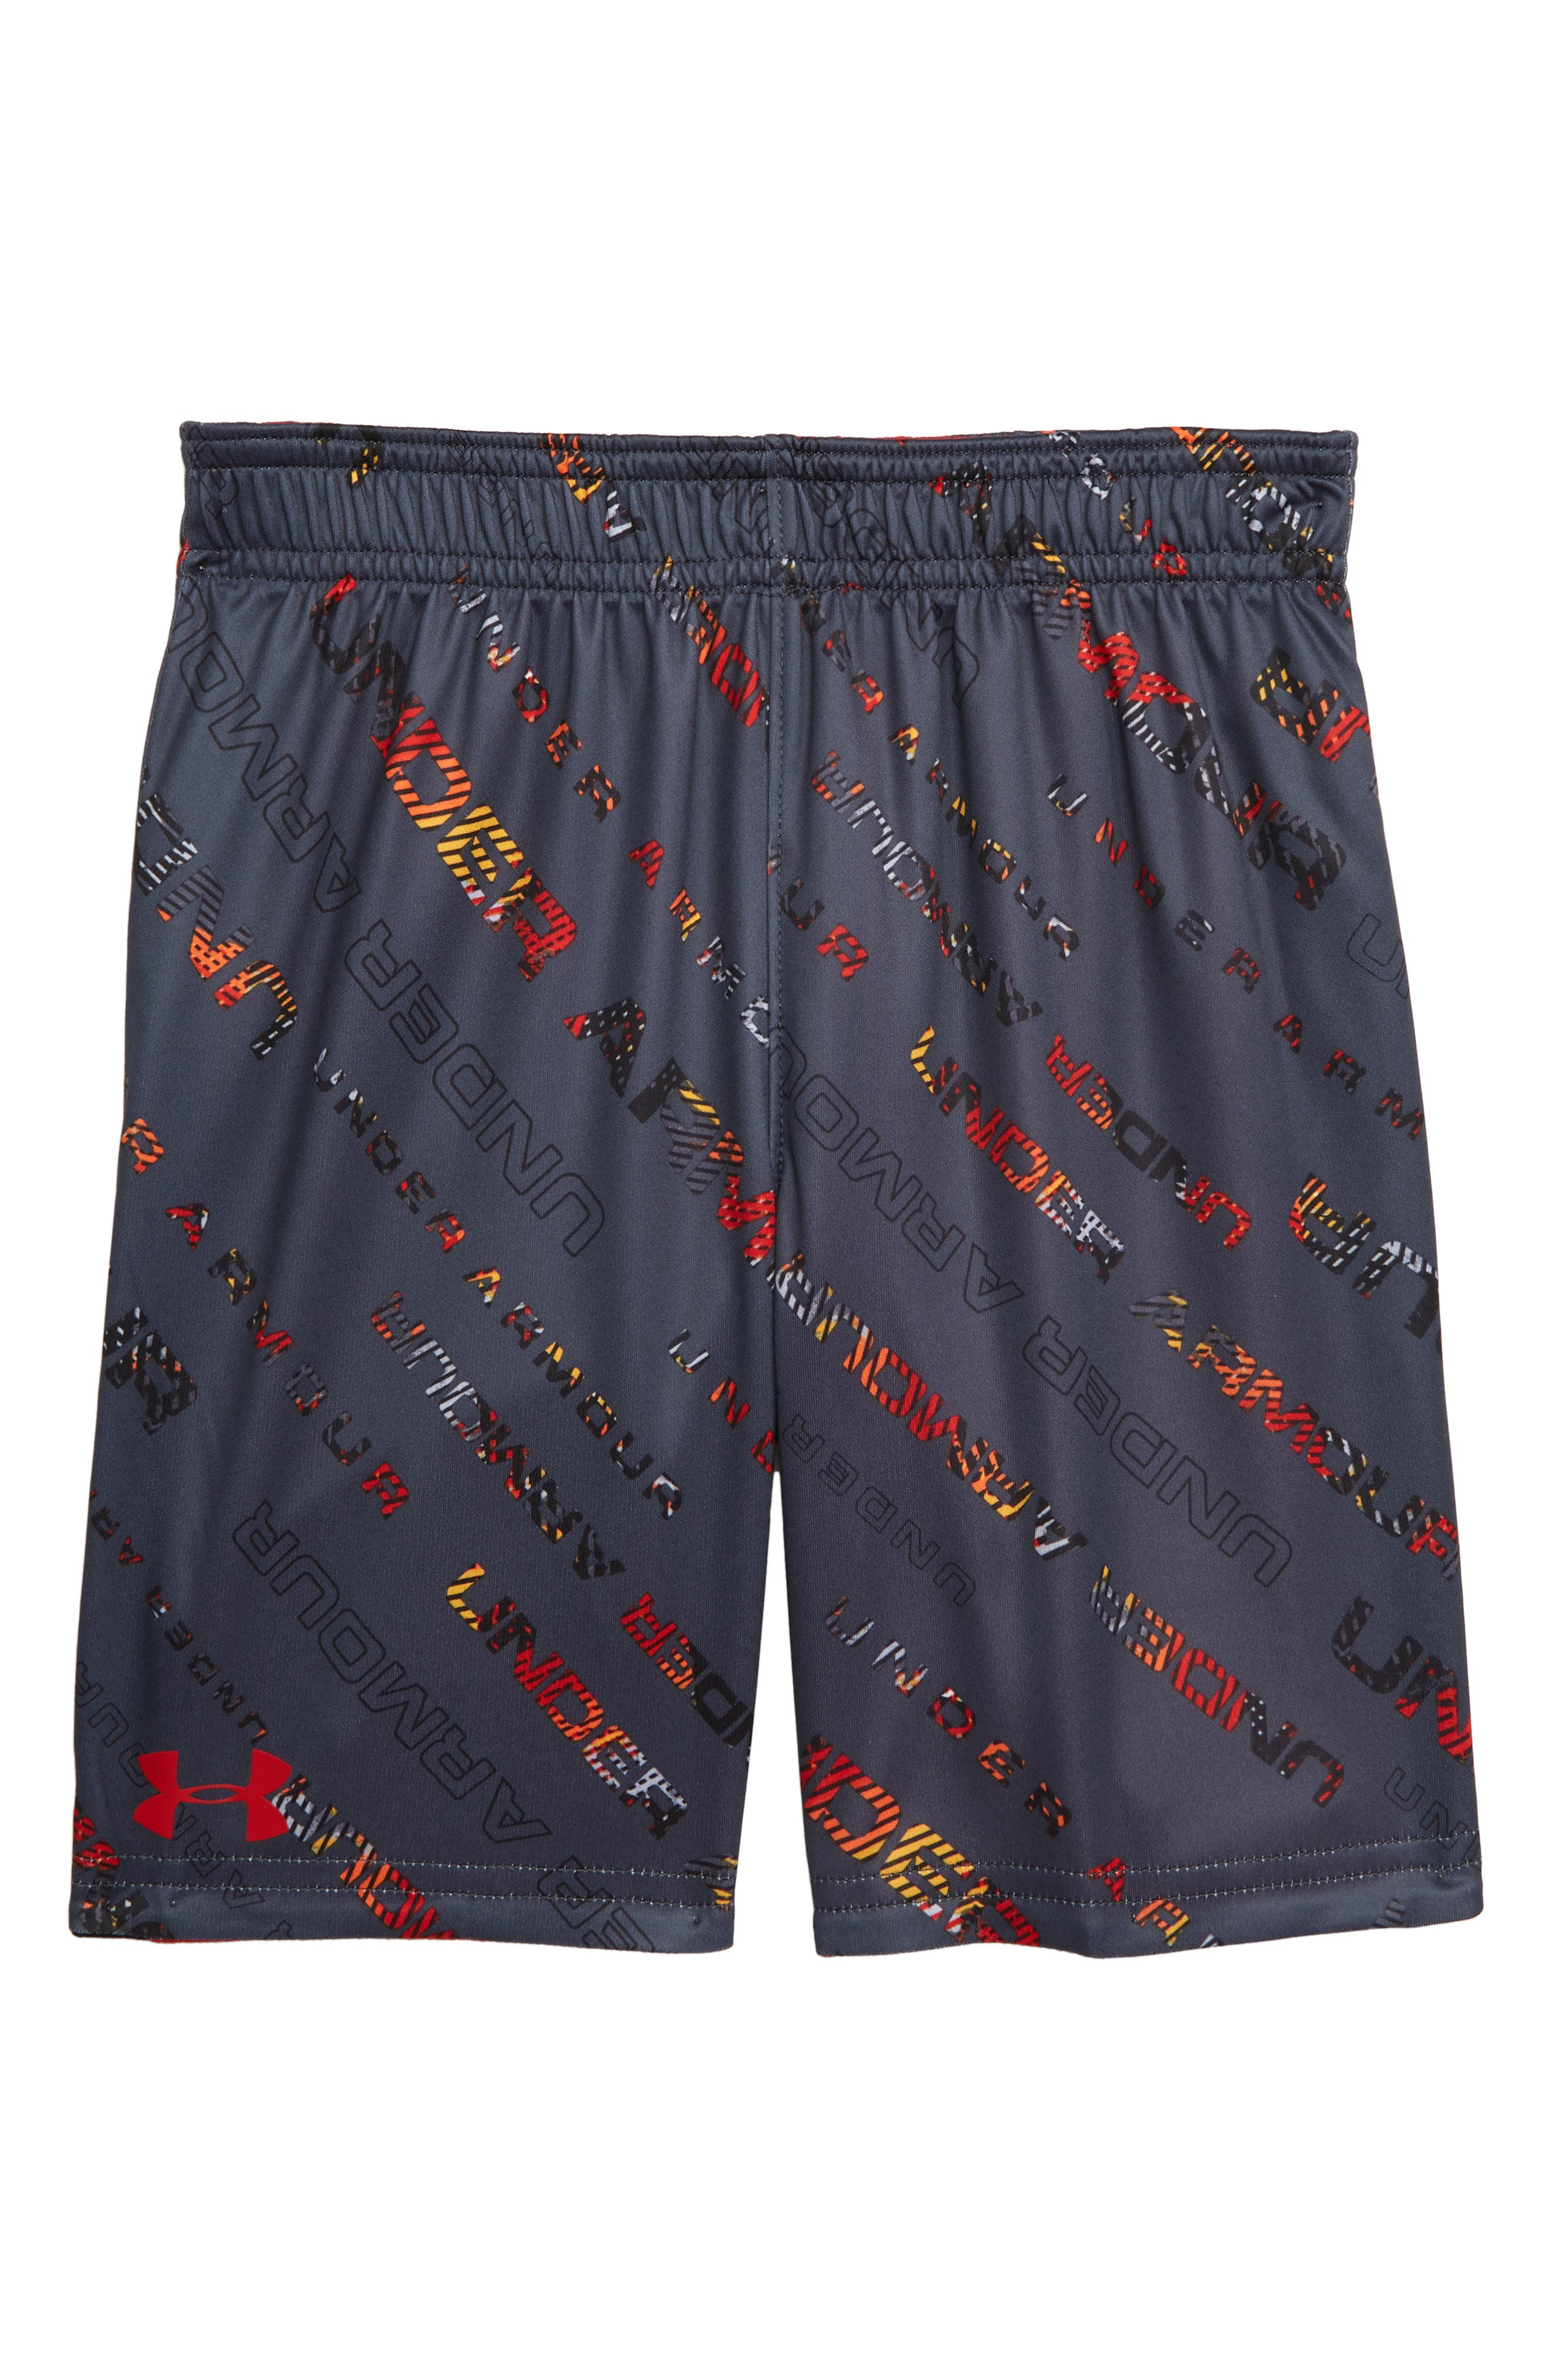 UNDER ARMOUR, Lined Up HeatGear<sup>®</sup> Reversible Shorts, Main thumbnail 1, color, PITCH GRAY